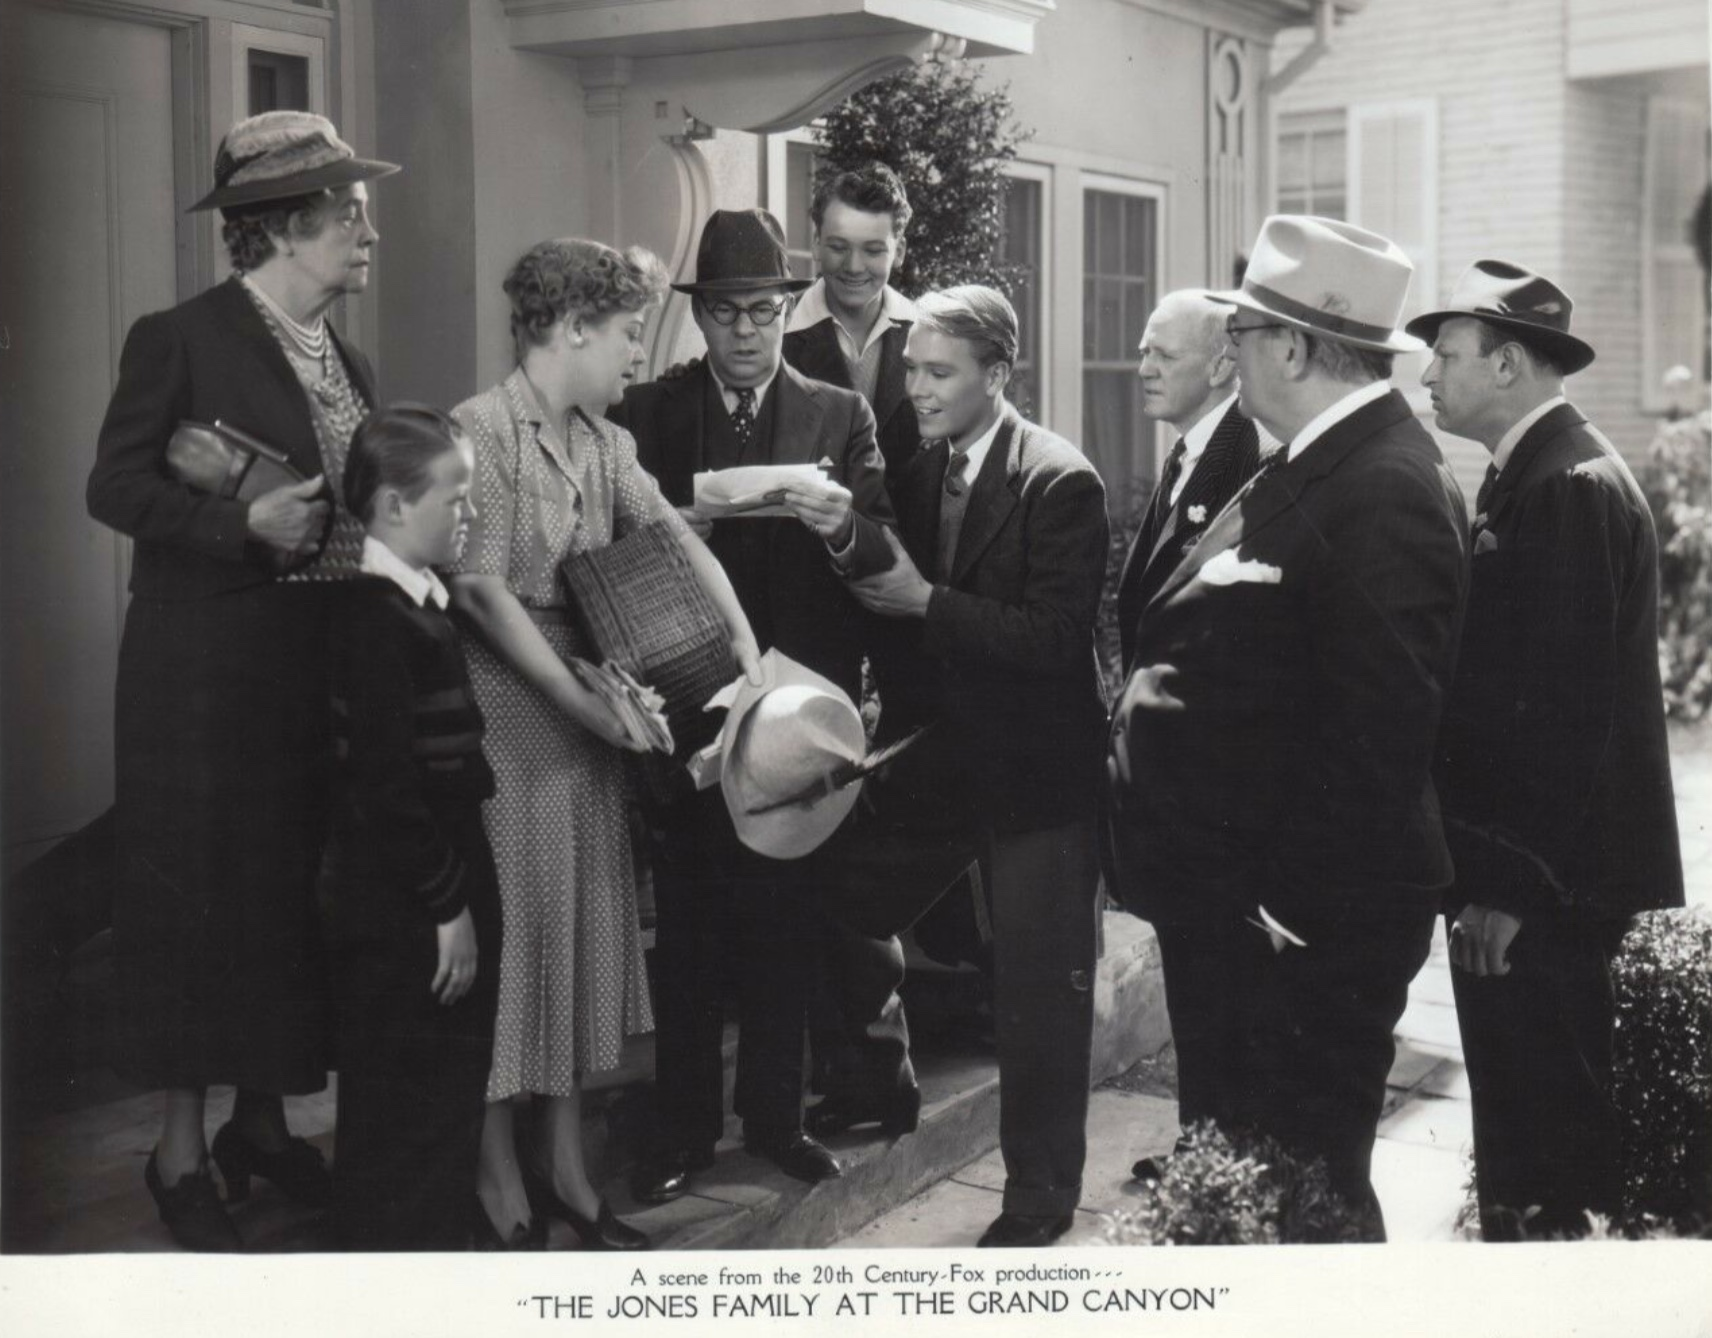 Spring Byington, Kenneth Howell, John T. Murray, Jed Prouty, and Florence Roberts in Quick Millions (1939)